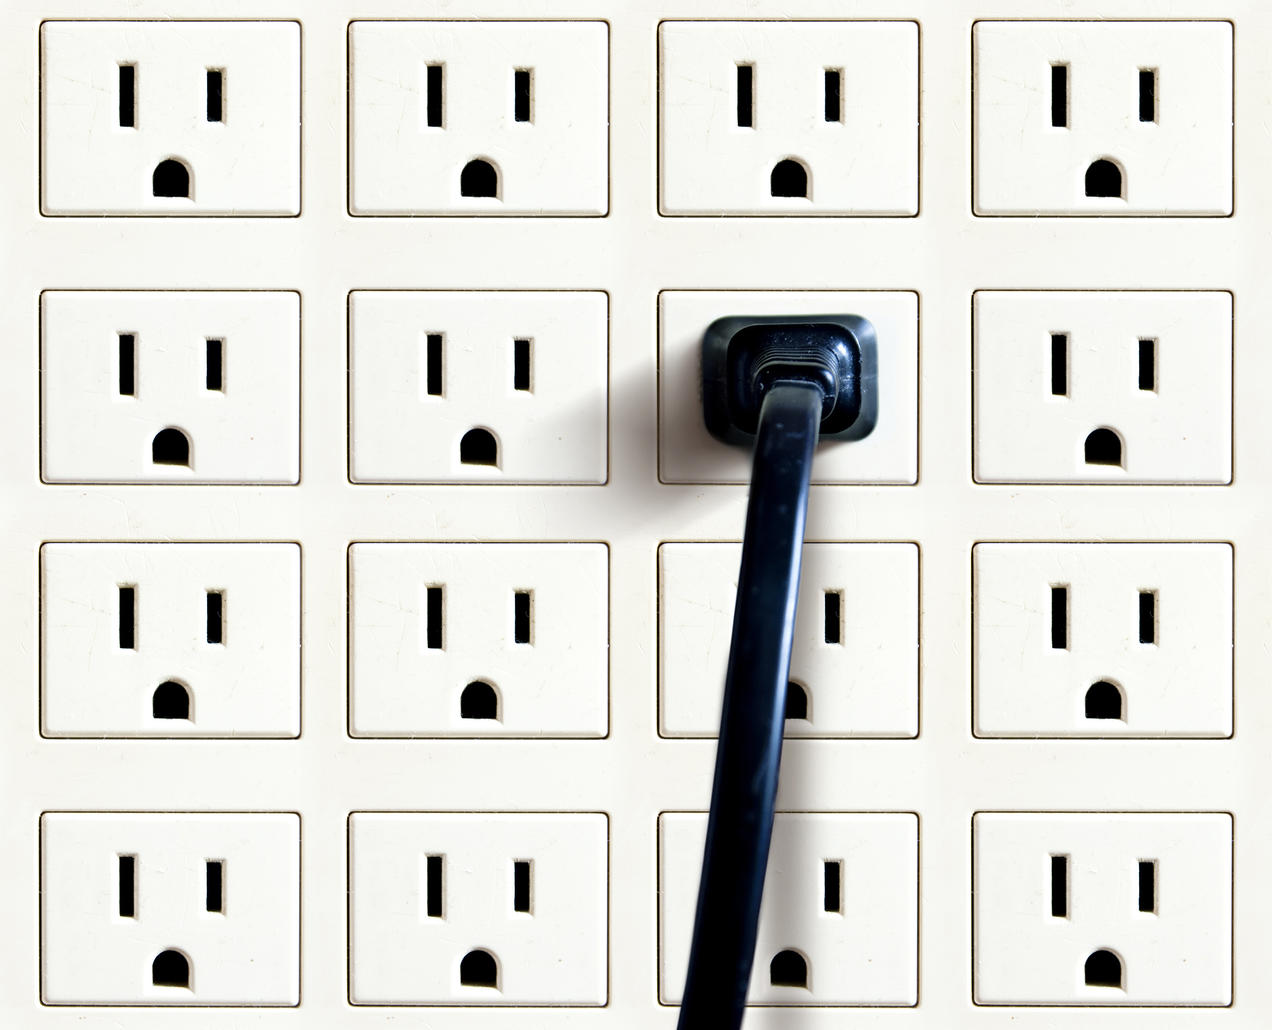 Keep Your Devices From Wasting Energy And Money Nrdc The Real Truth Behind Household Power Savers Eep Fer Gregory Shutterstock